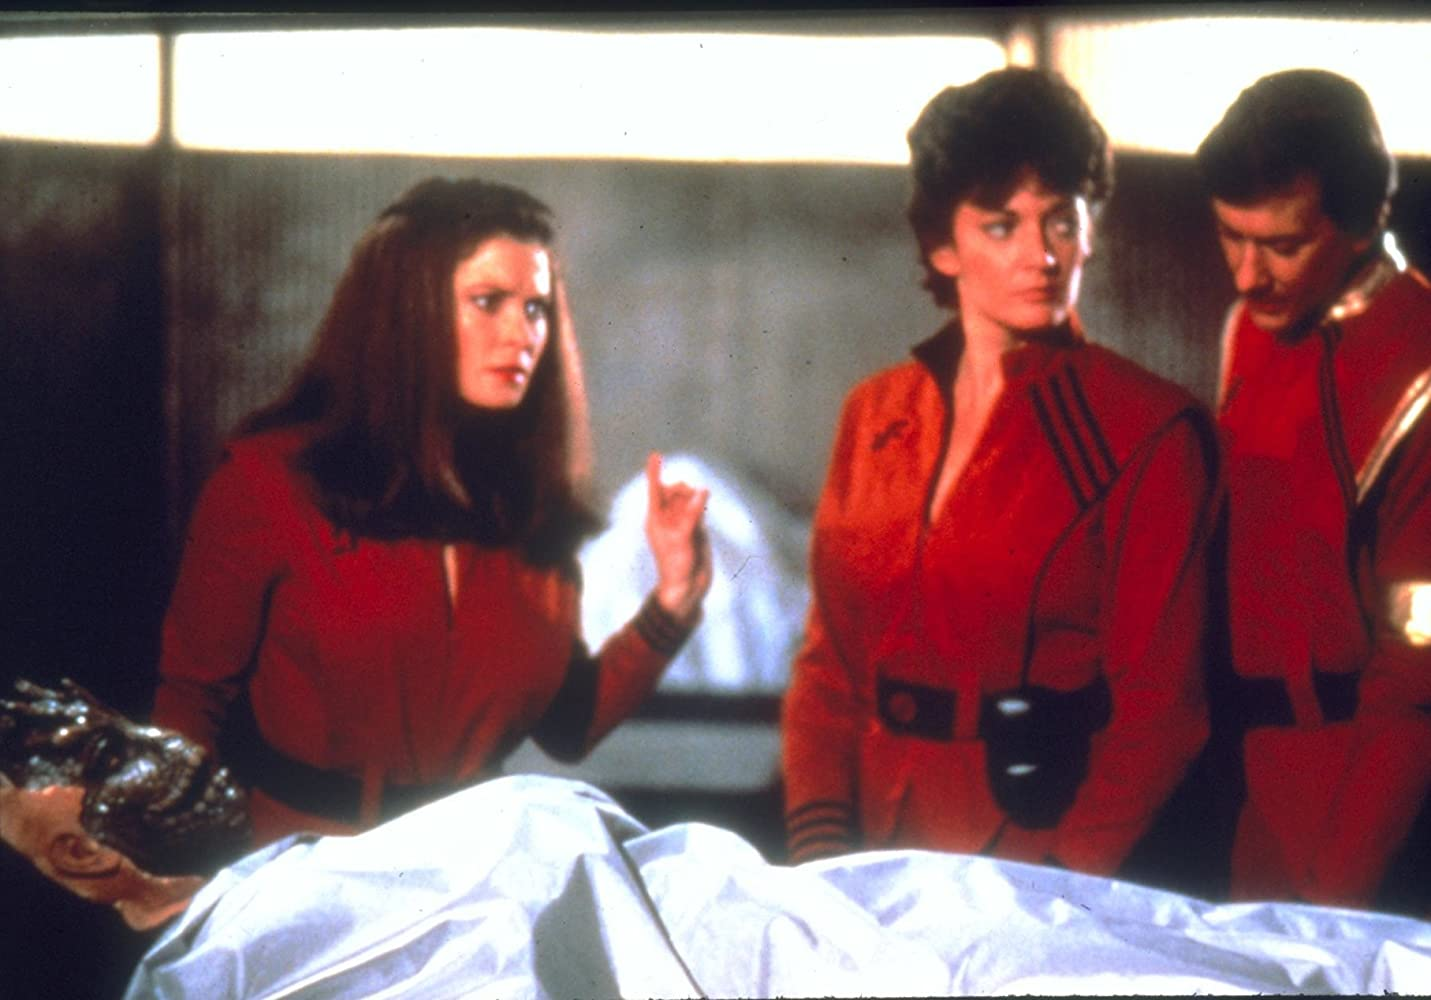 Jane Badler, Sarah Douglas, and Andrew Prine in V: The Final Battle (1984)